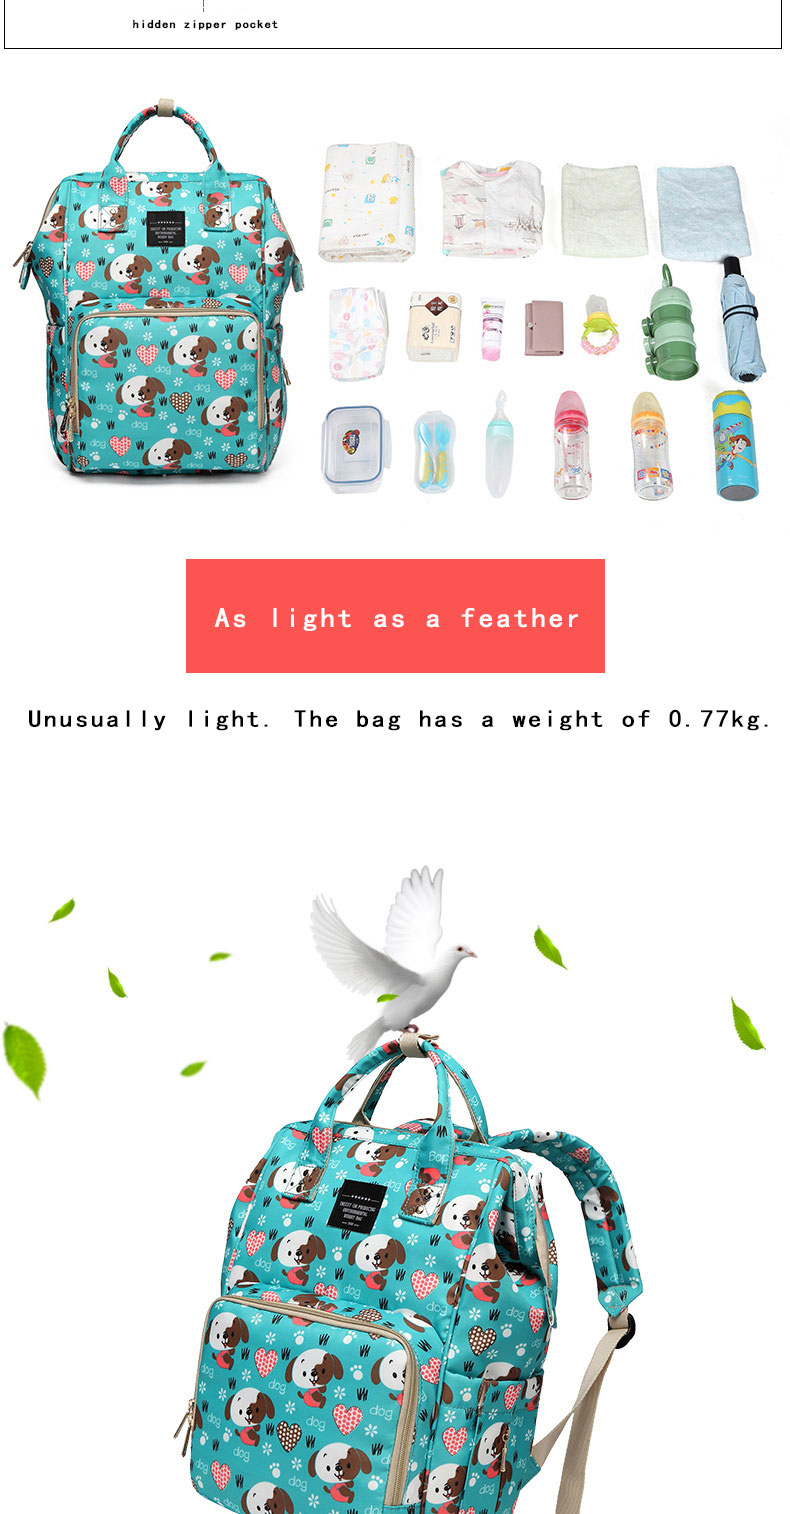 H39a5a7a03efb4e67ad0d4901318fde517 Fashion Mummy Maternity Nappy Bag Waterproof Diaper Bag With USB Stroller Travel Backpack Multi-pocket Nursing Bag for Baby Care